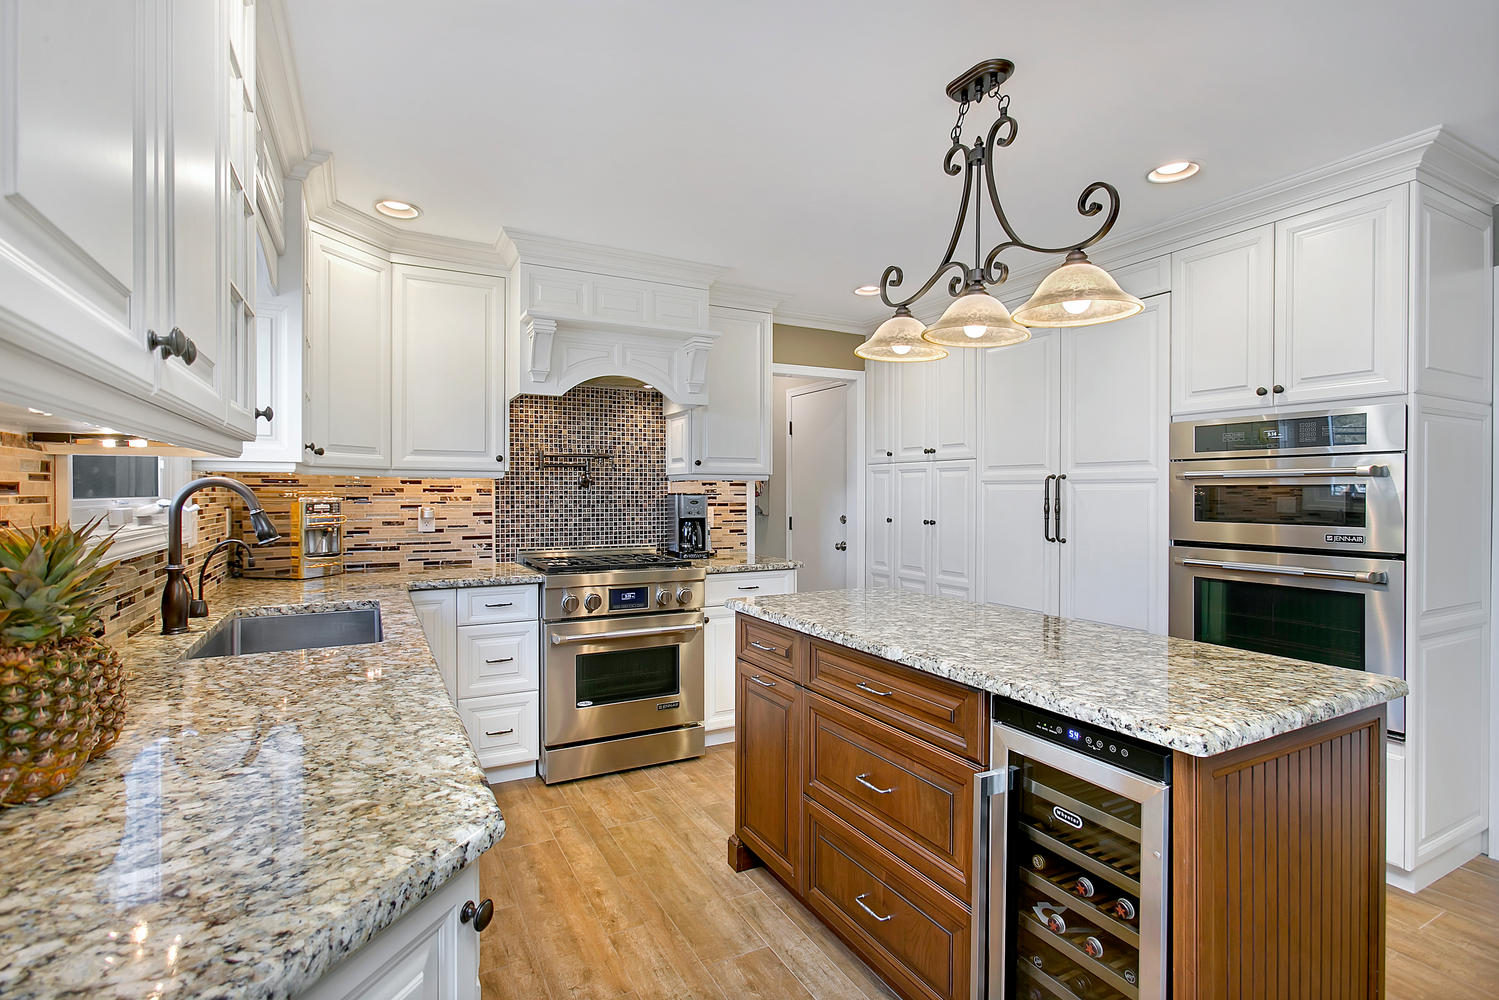 house beautiful ready marlboro new jersey by design line kitchens. Black Bedroom Furniture Sets. Home Design Ideas